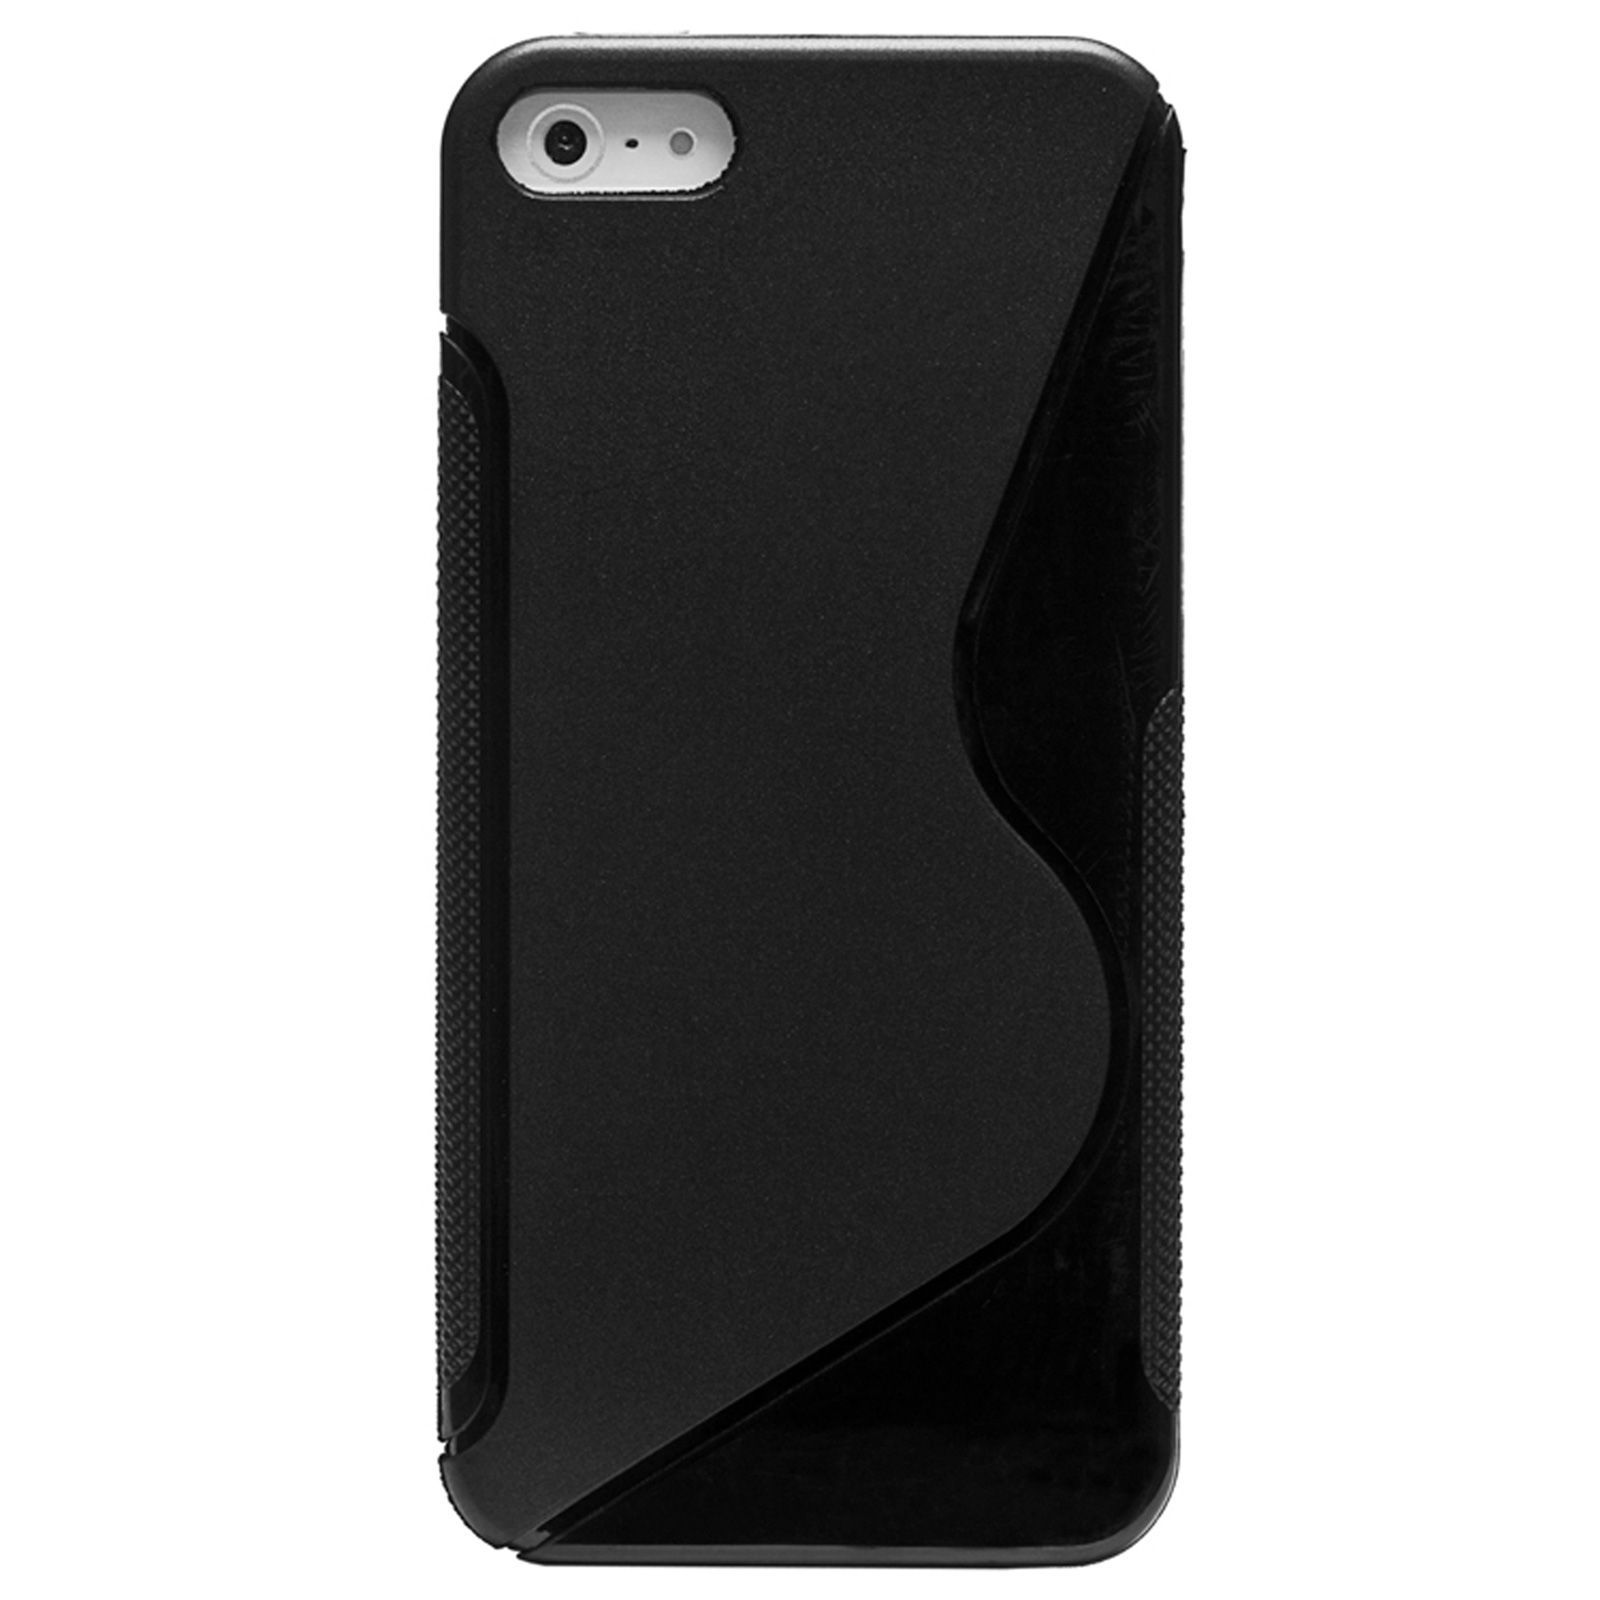 BRANDALLEY - Fashion Elements Coque TPU Style iPhone 5 noire